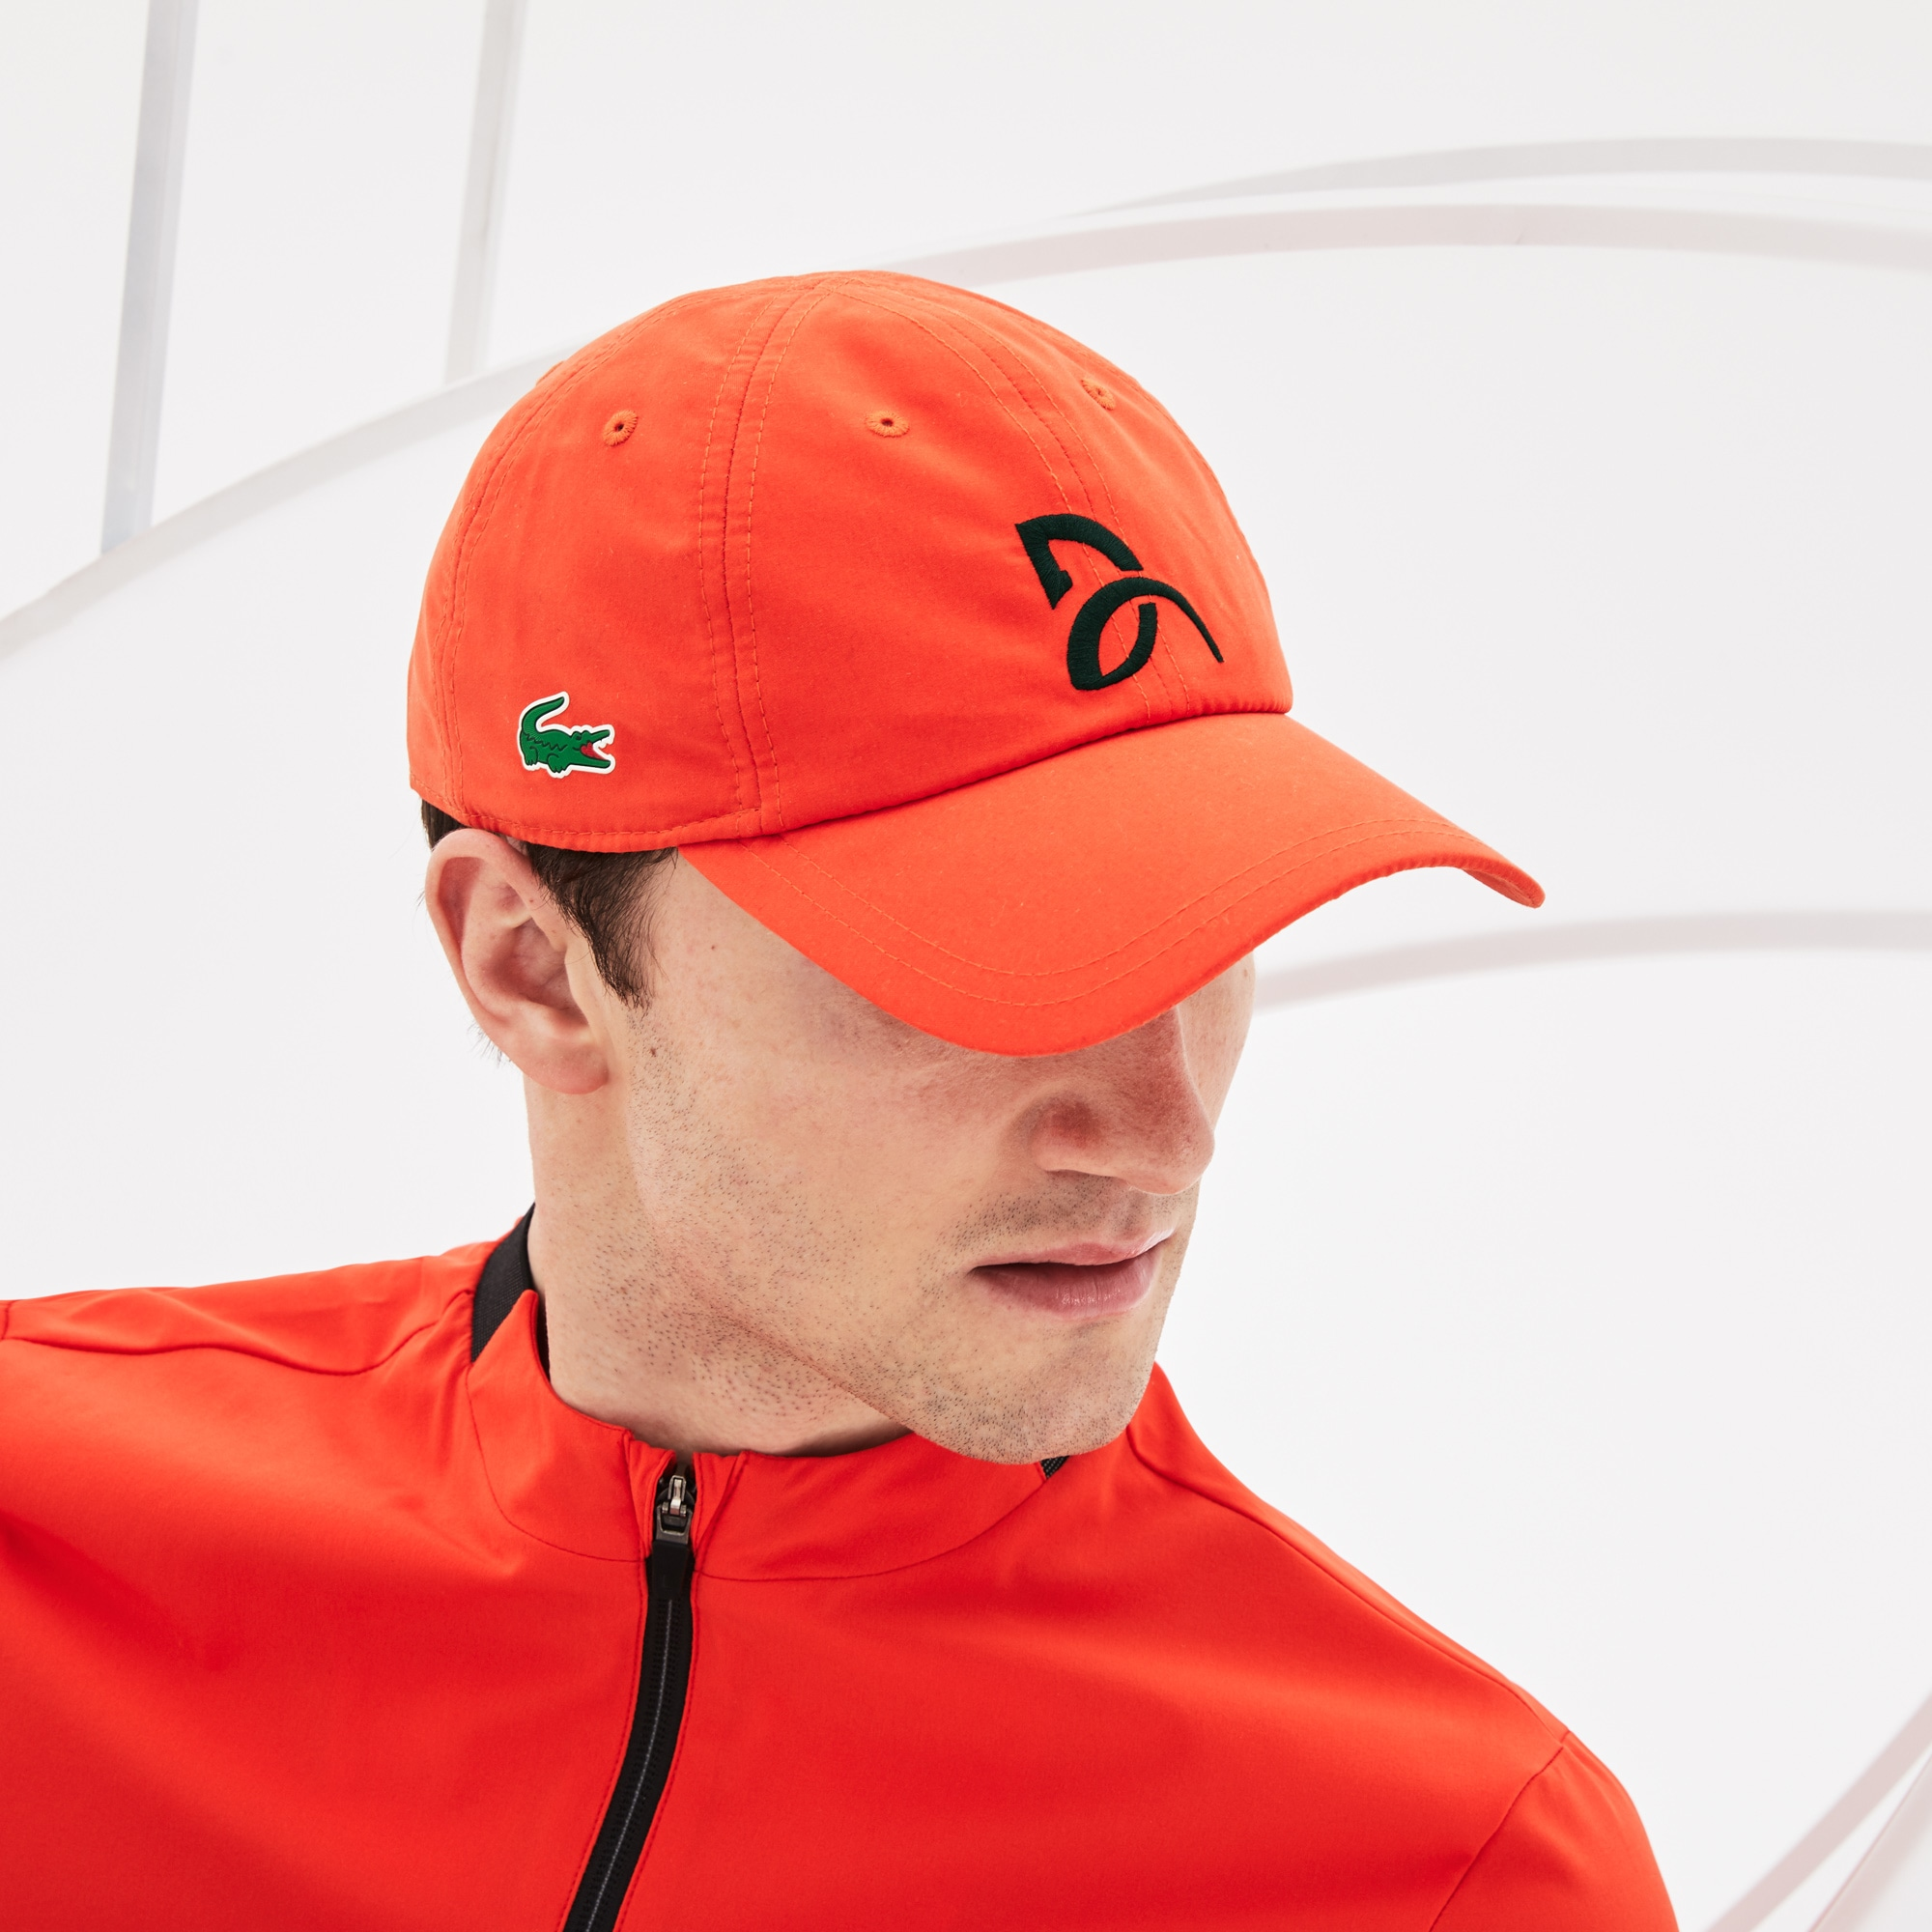 Men's  Sport Tennis Microfiber Cap - Support With Style Collection for Novak Djokovic